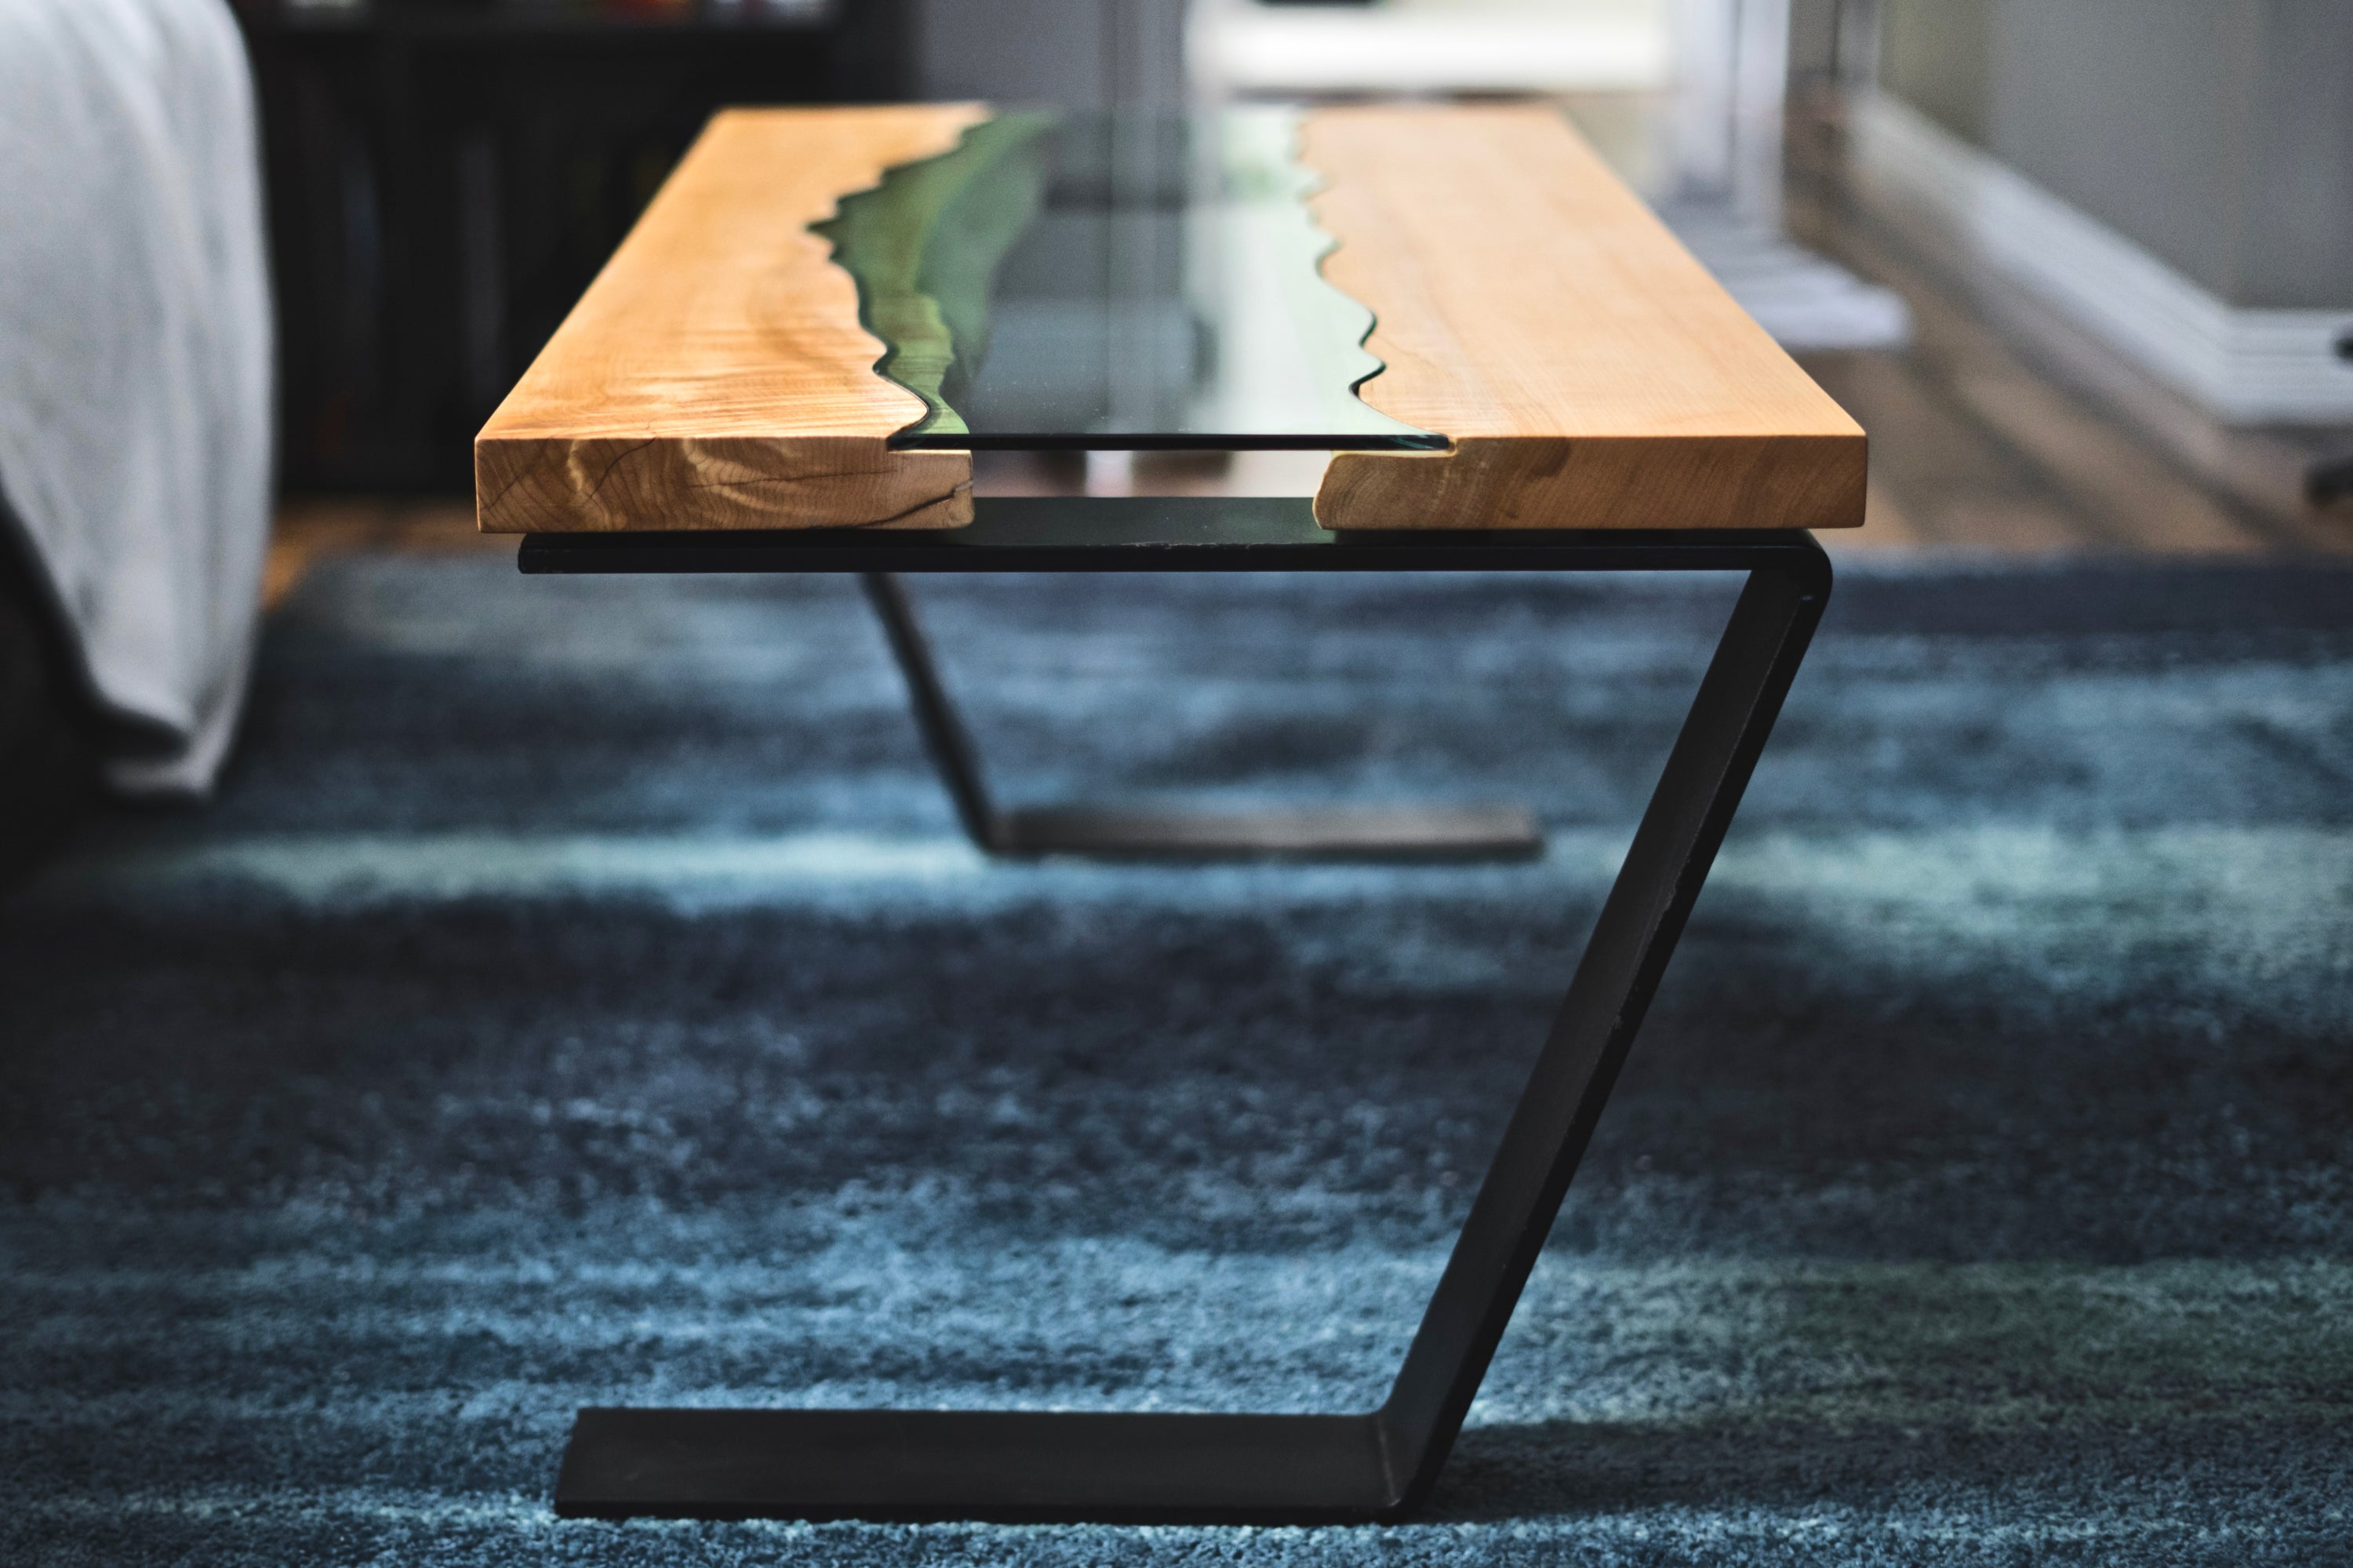 Handmade river coffee table with a big leaf maple top, river glass centre, and asymmetric black powder coated steel legs.